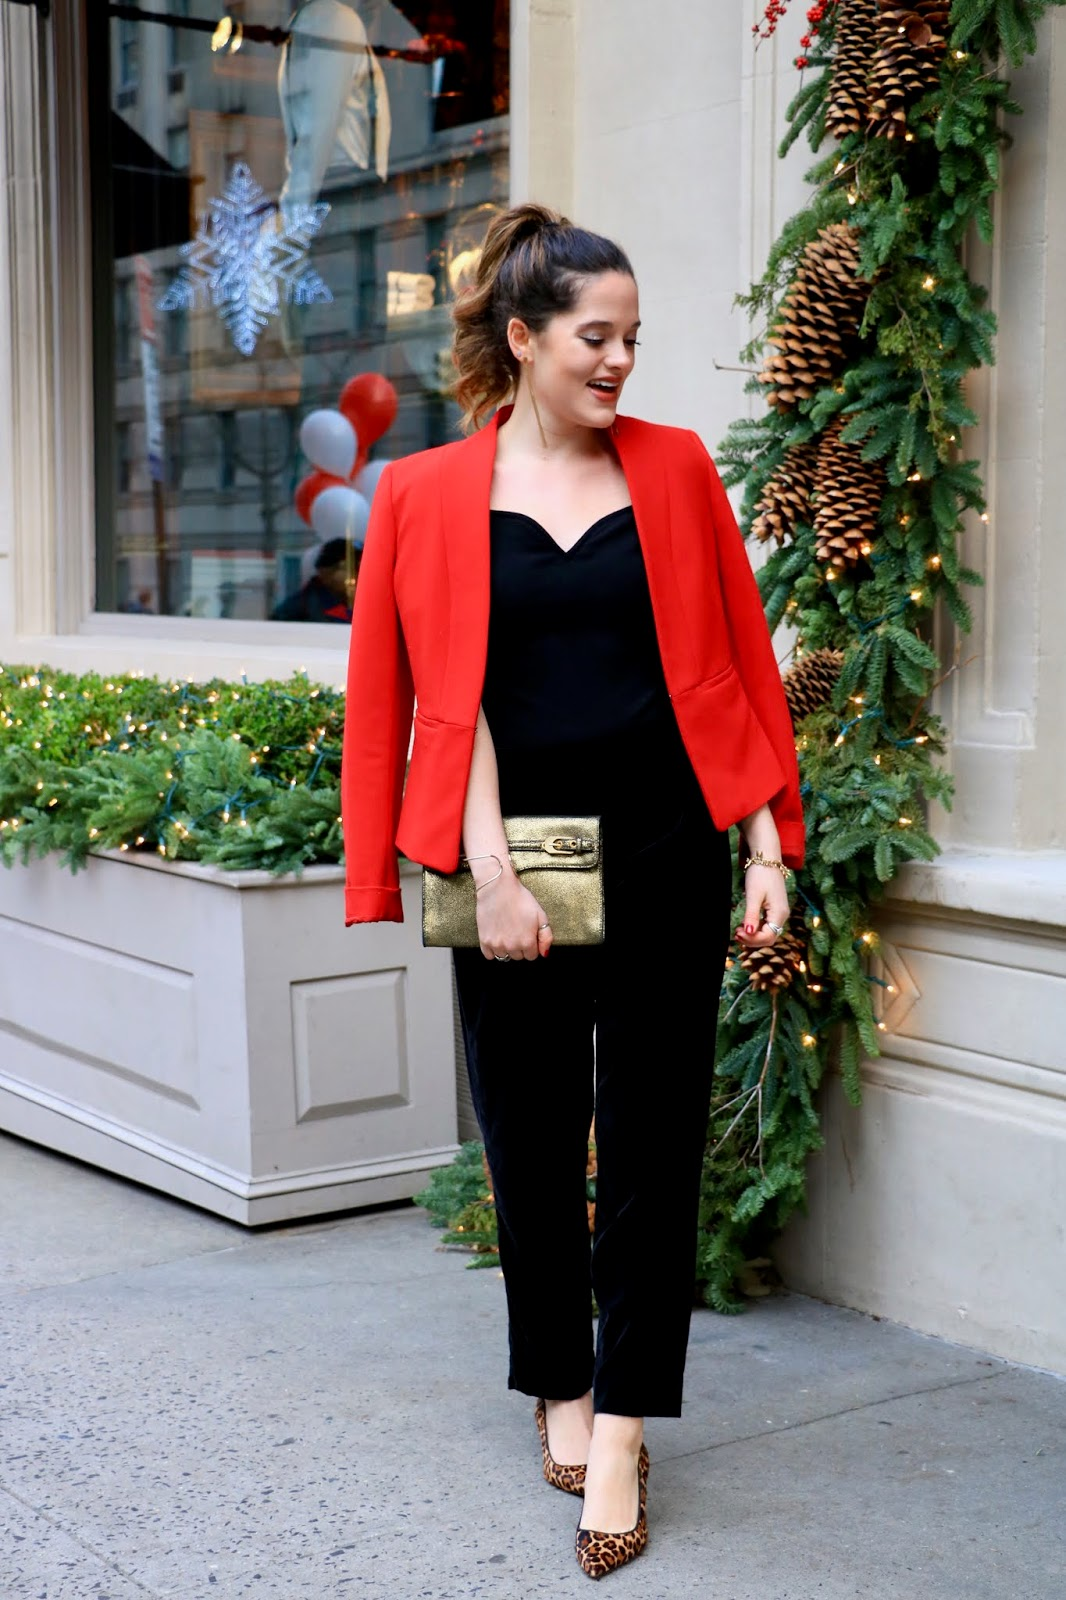 Nyc fashion blogger Kathleen Harper's holiday outfits